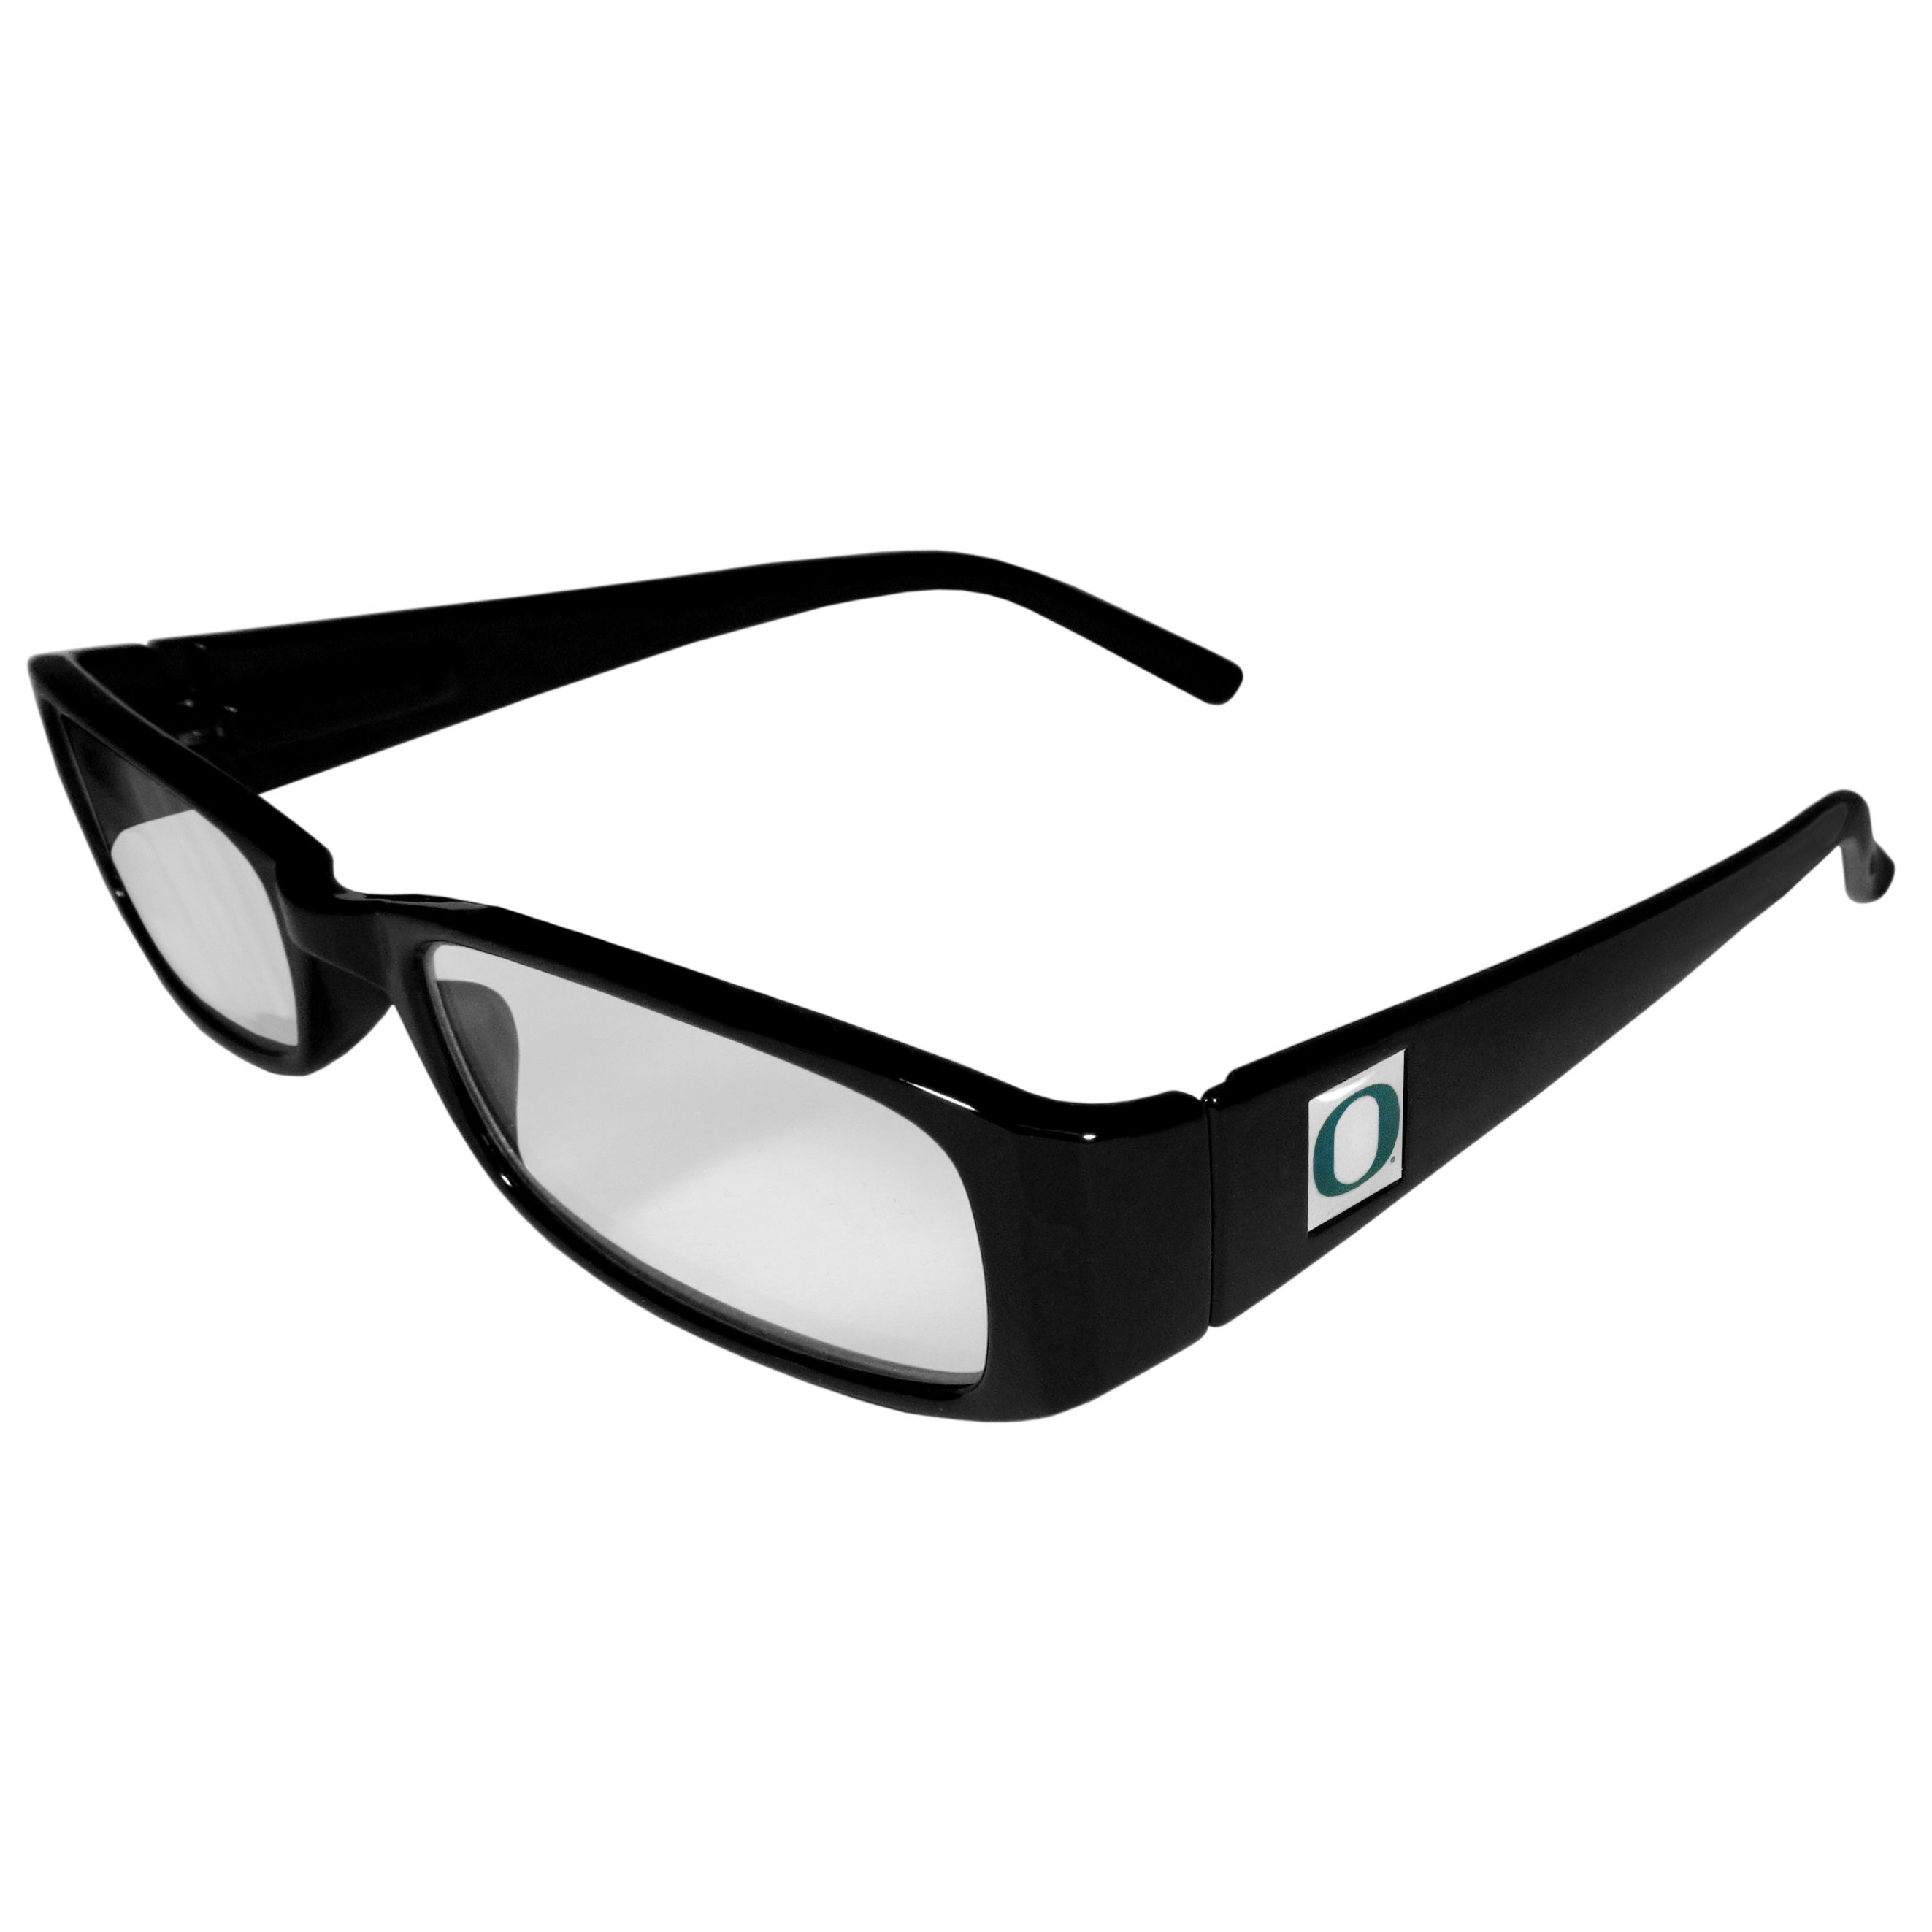 Oregon Ducks Black Reading Glasses +1.25 - Our Oregon Ducks reading glasses are 5.25 inches wide and feature the team logo on each arm. Magnification Power 1.25